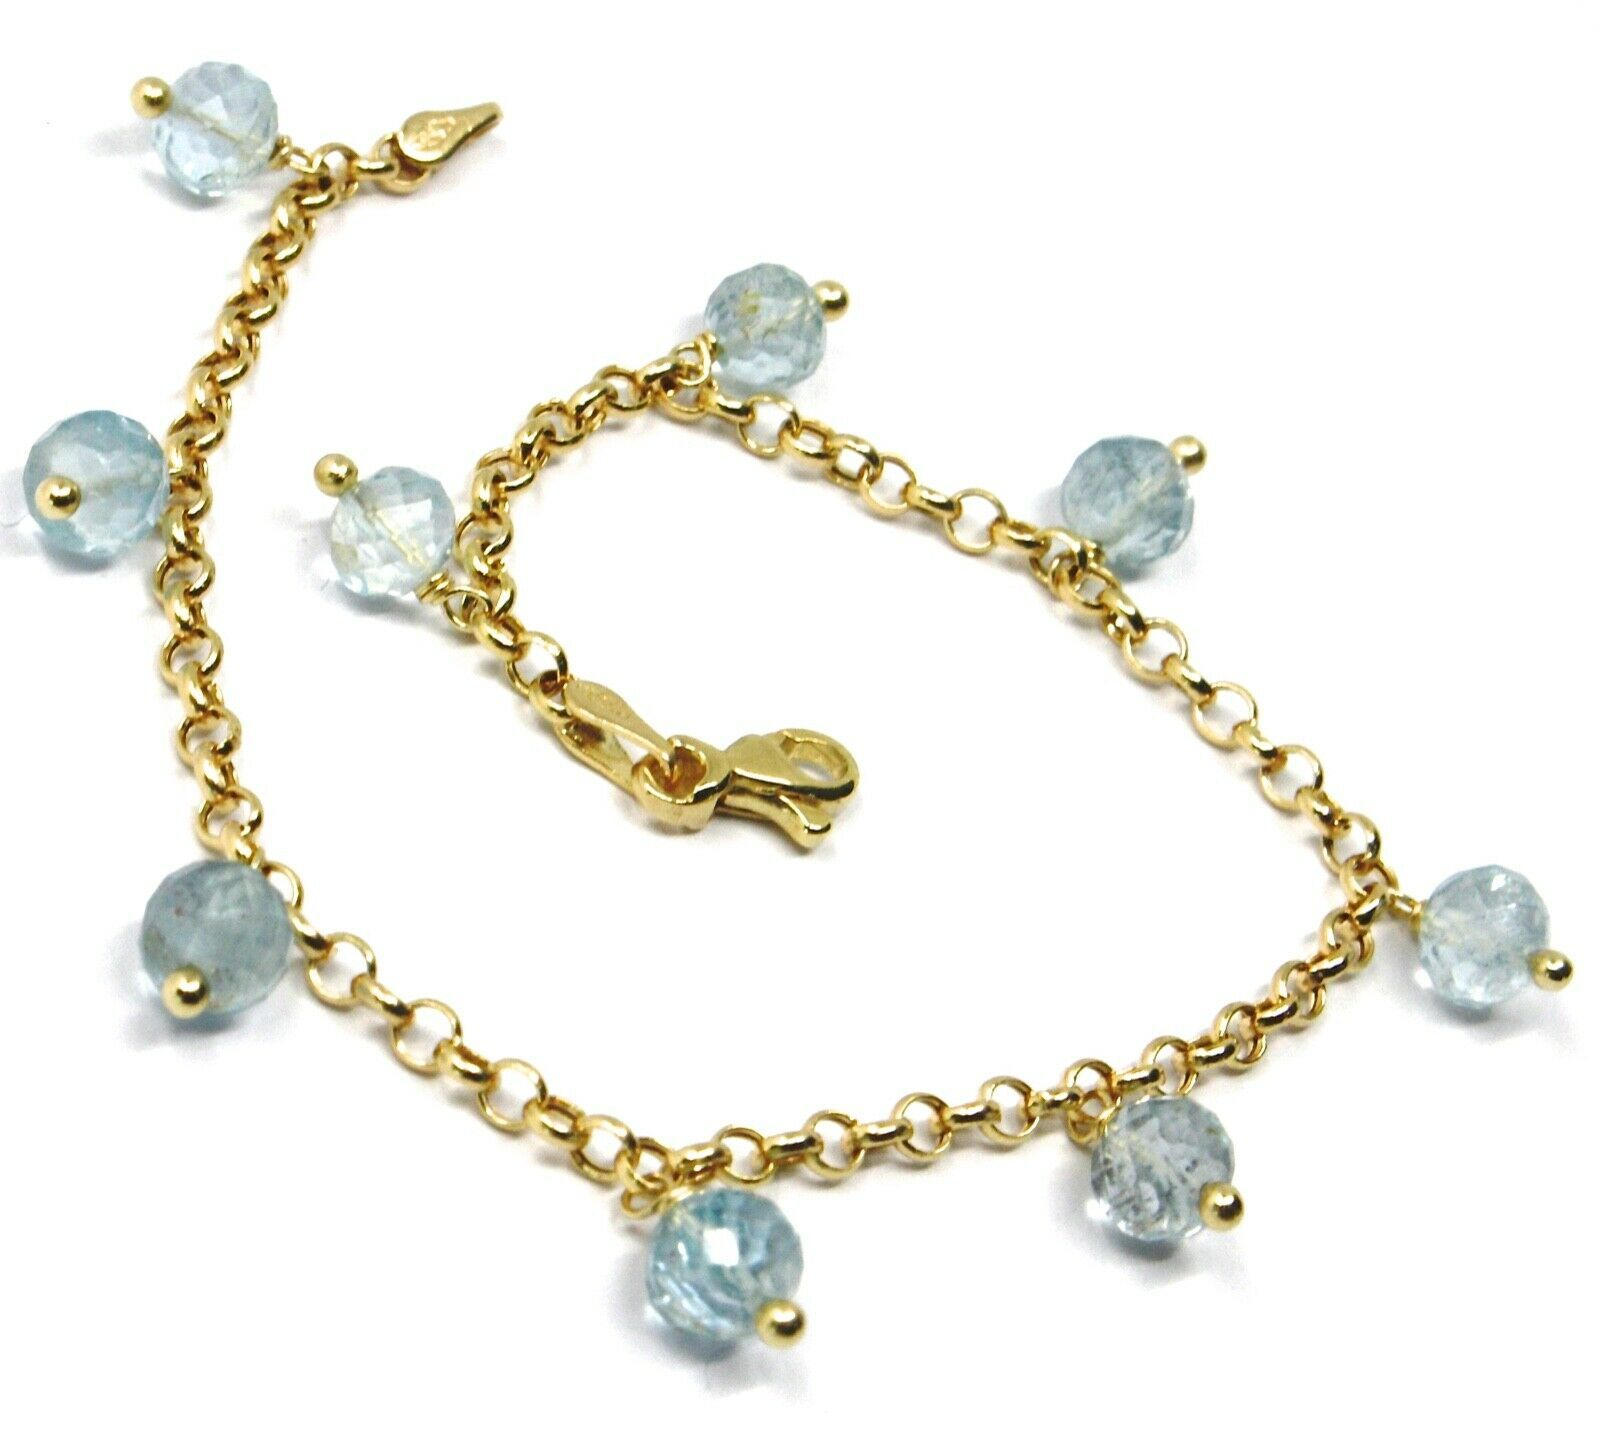 18K YELLOW GOLD BRACELET, OVAL FACETED AQUAMARINE PENDANT, ROLO LINKS 2.5mm